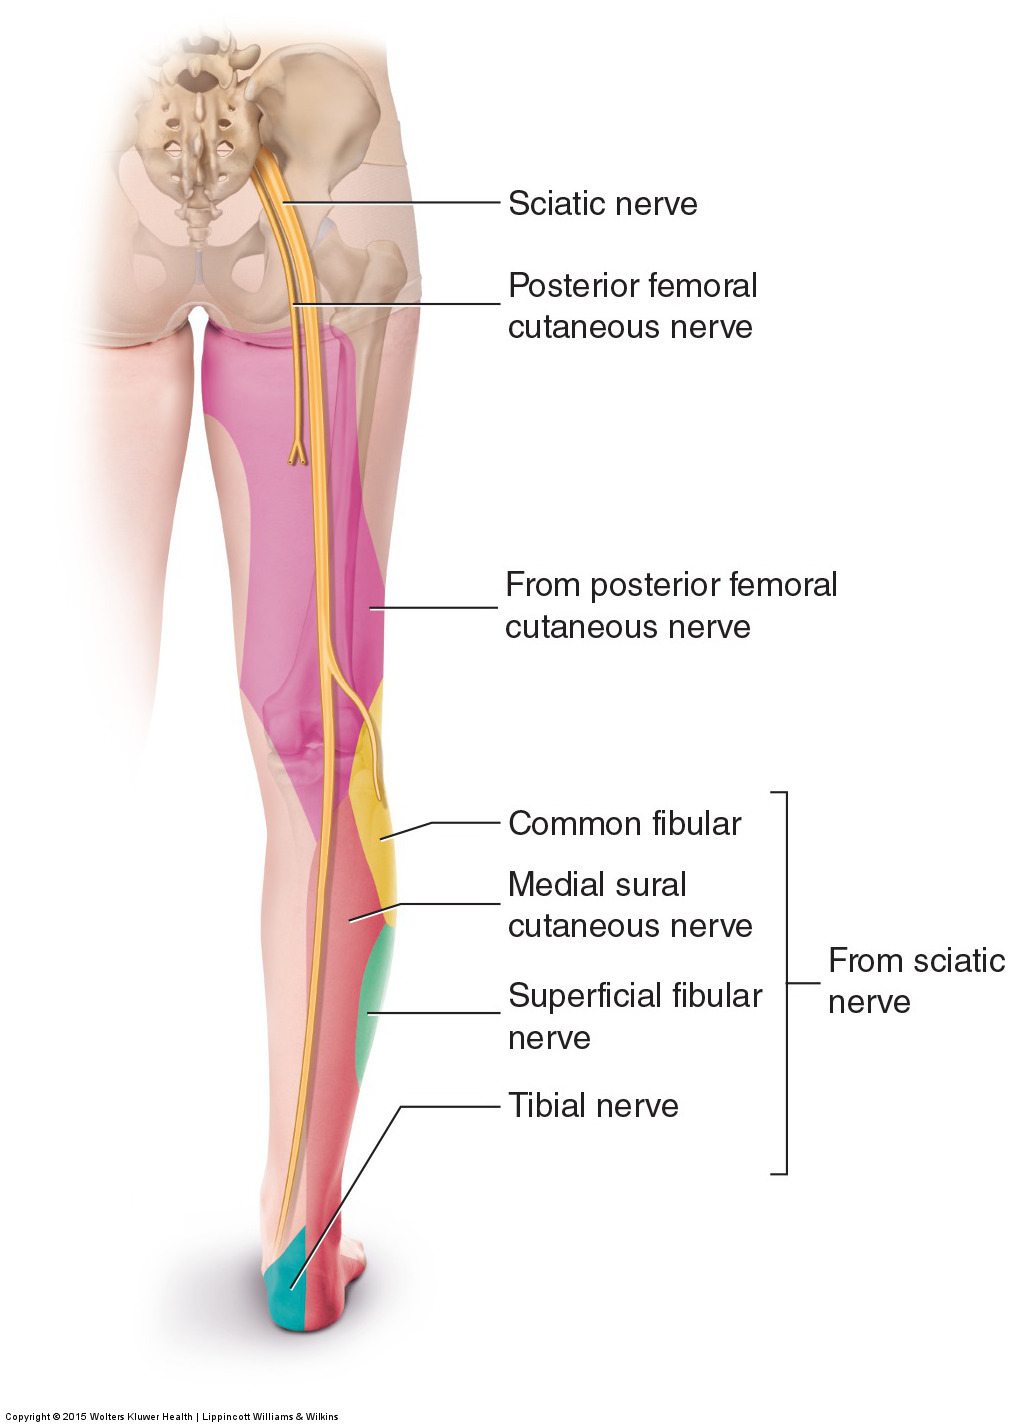 Sensory innervation of the sciatic nerve into the lower extremity. Permission: Joseph E. Muscolino. Permission: Joseph E. Muscolino. Manual Therapy for the Low Back and Pelvis (2015).